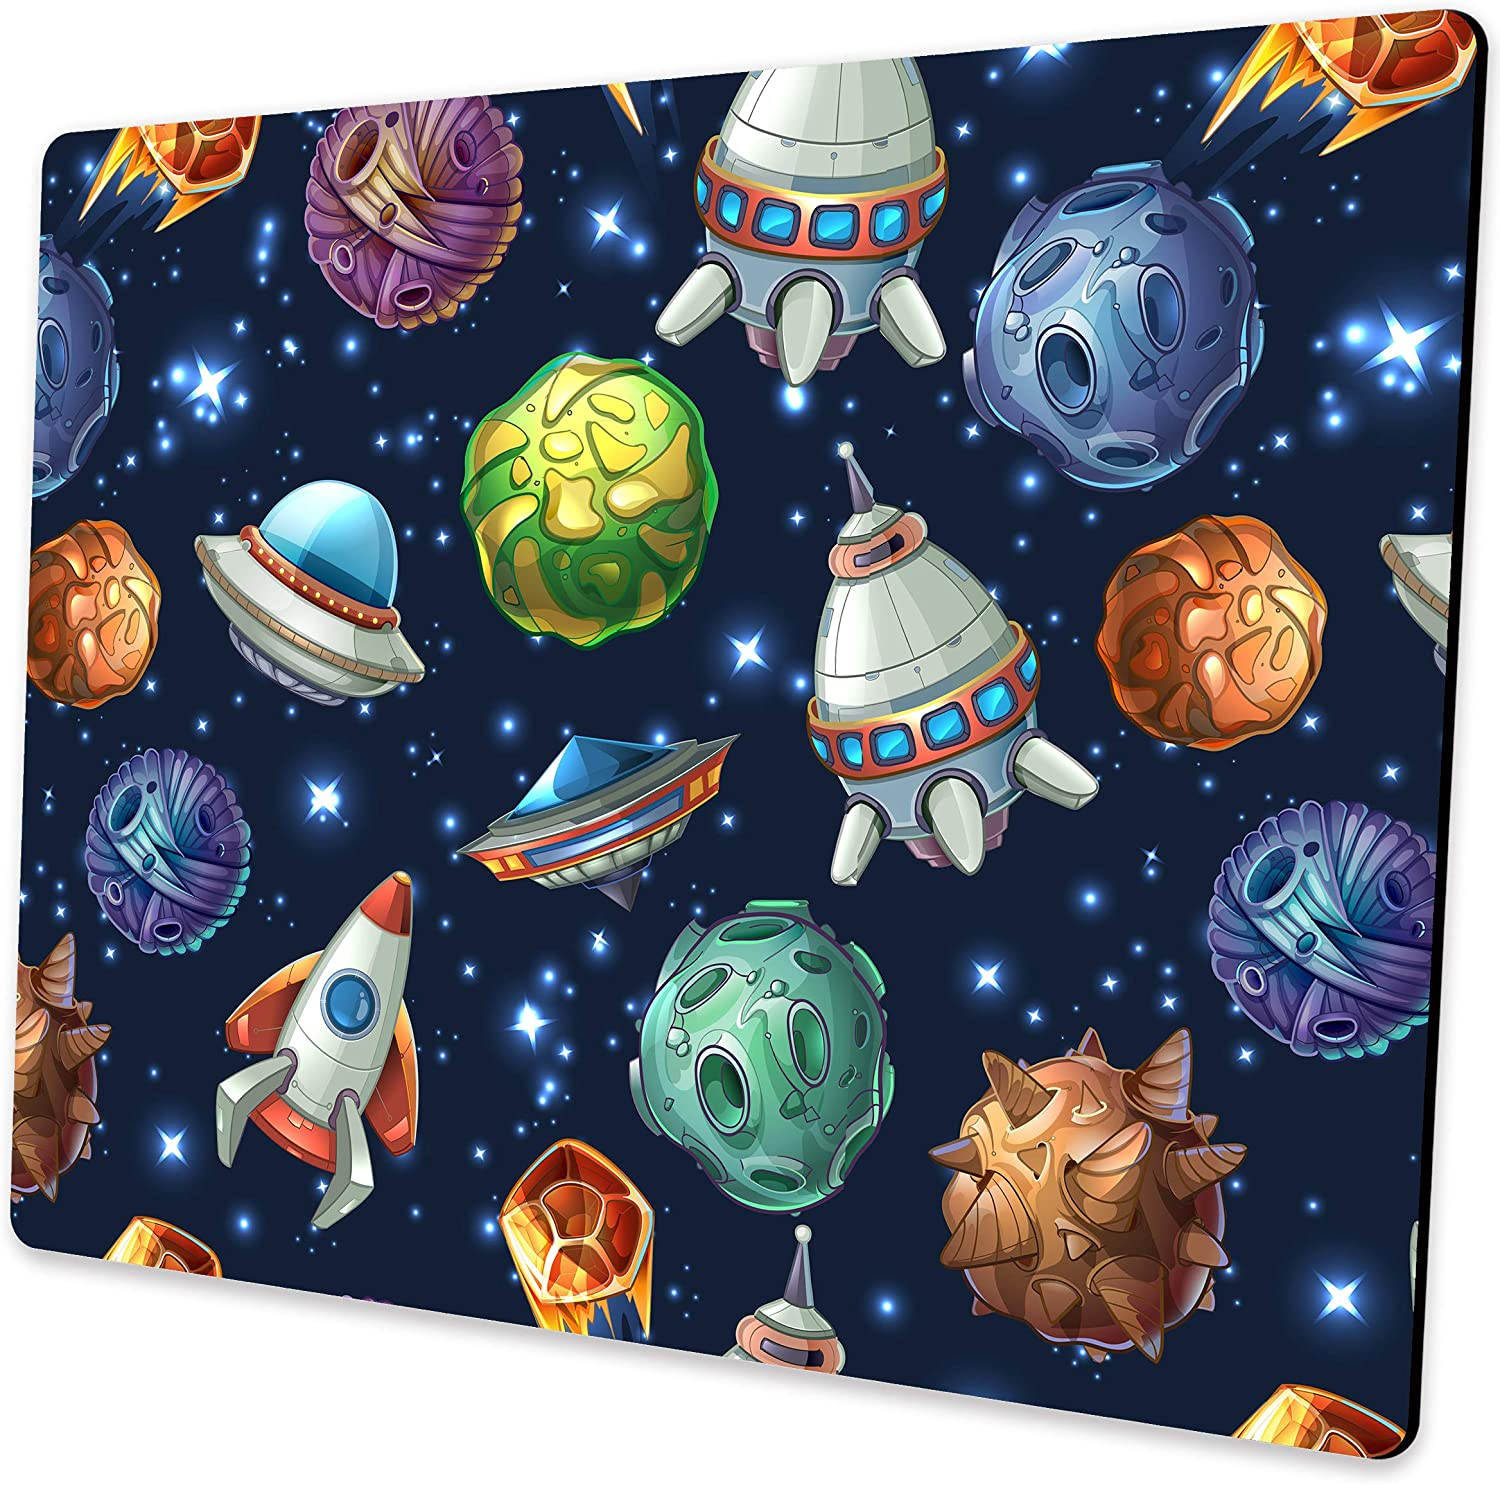 Shalysong Comic Space with Planets and Spaceships Mouse pad Computer Mouse pad with Design Personalized Mouse pad for Laptop Computer Office Decoration Accessories Gift…